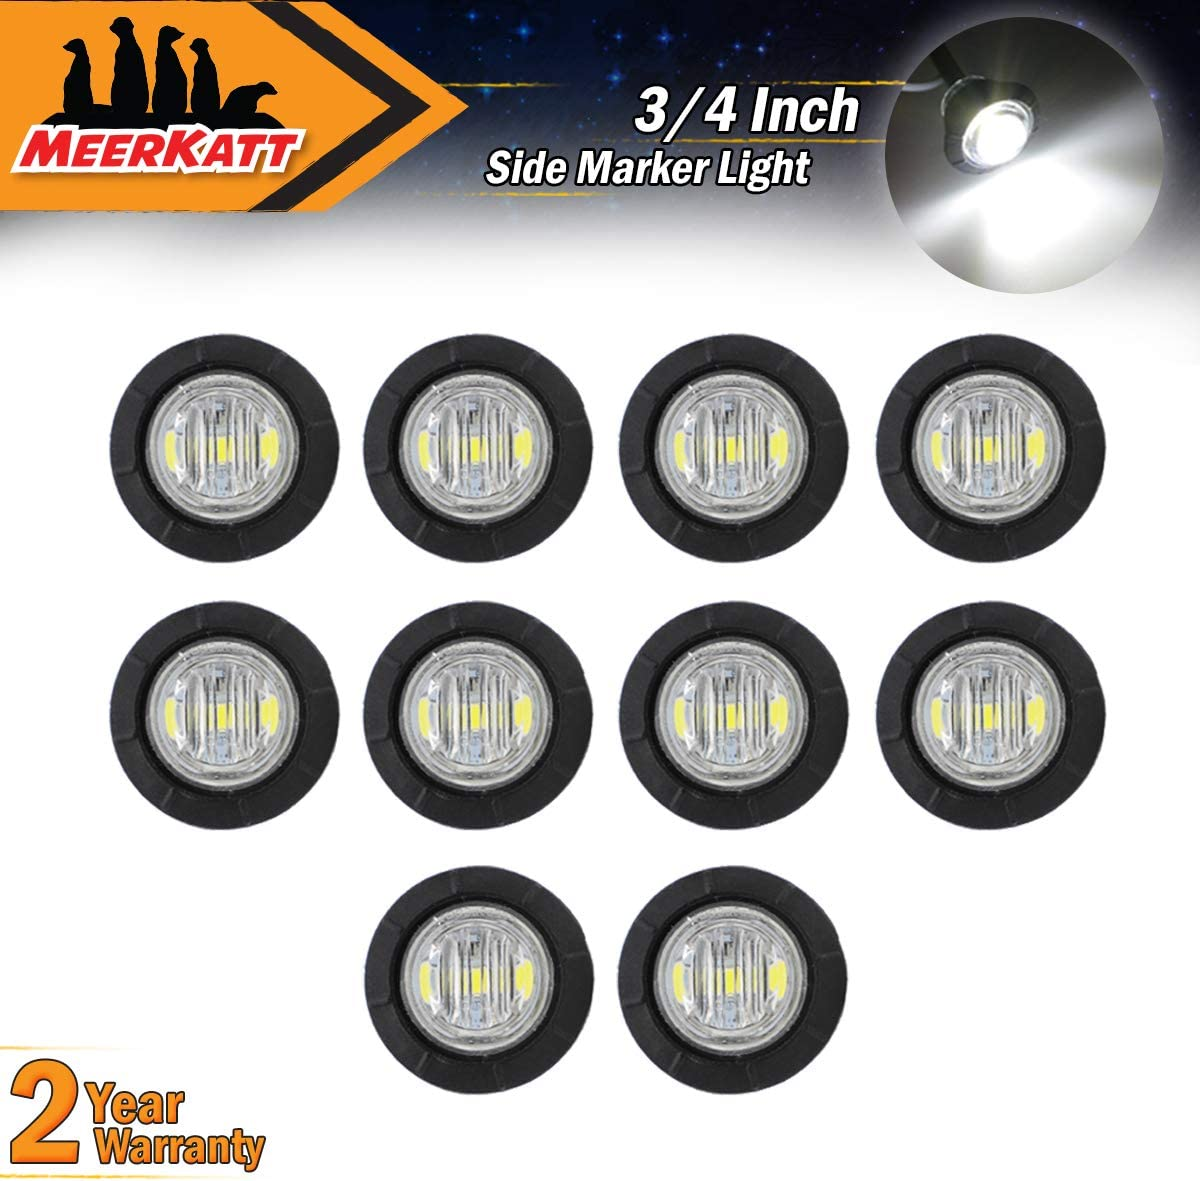 Meerkatt (Pack of 10) 3/4 Inch Mini Round White LED Side Marker Sealed Small Flush Mount Clearance Lamp Indicator Light Waterproof Tow Truck Caravan Bus Van Boat Ship Lorry Jeep 12V DC Universal 71w17Cs79hL